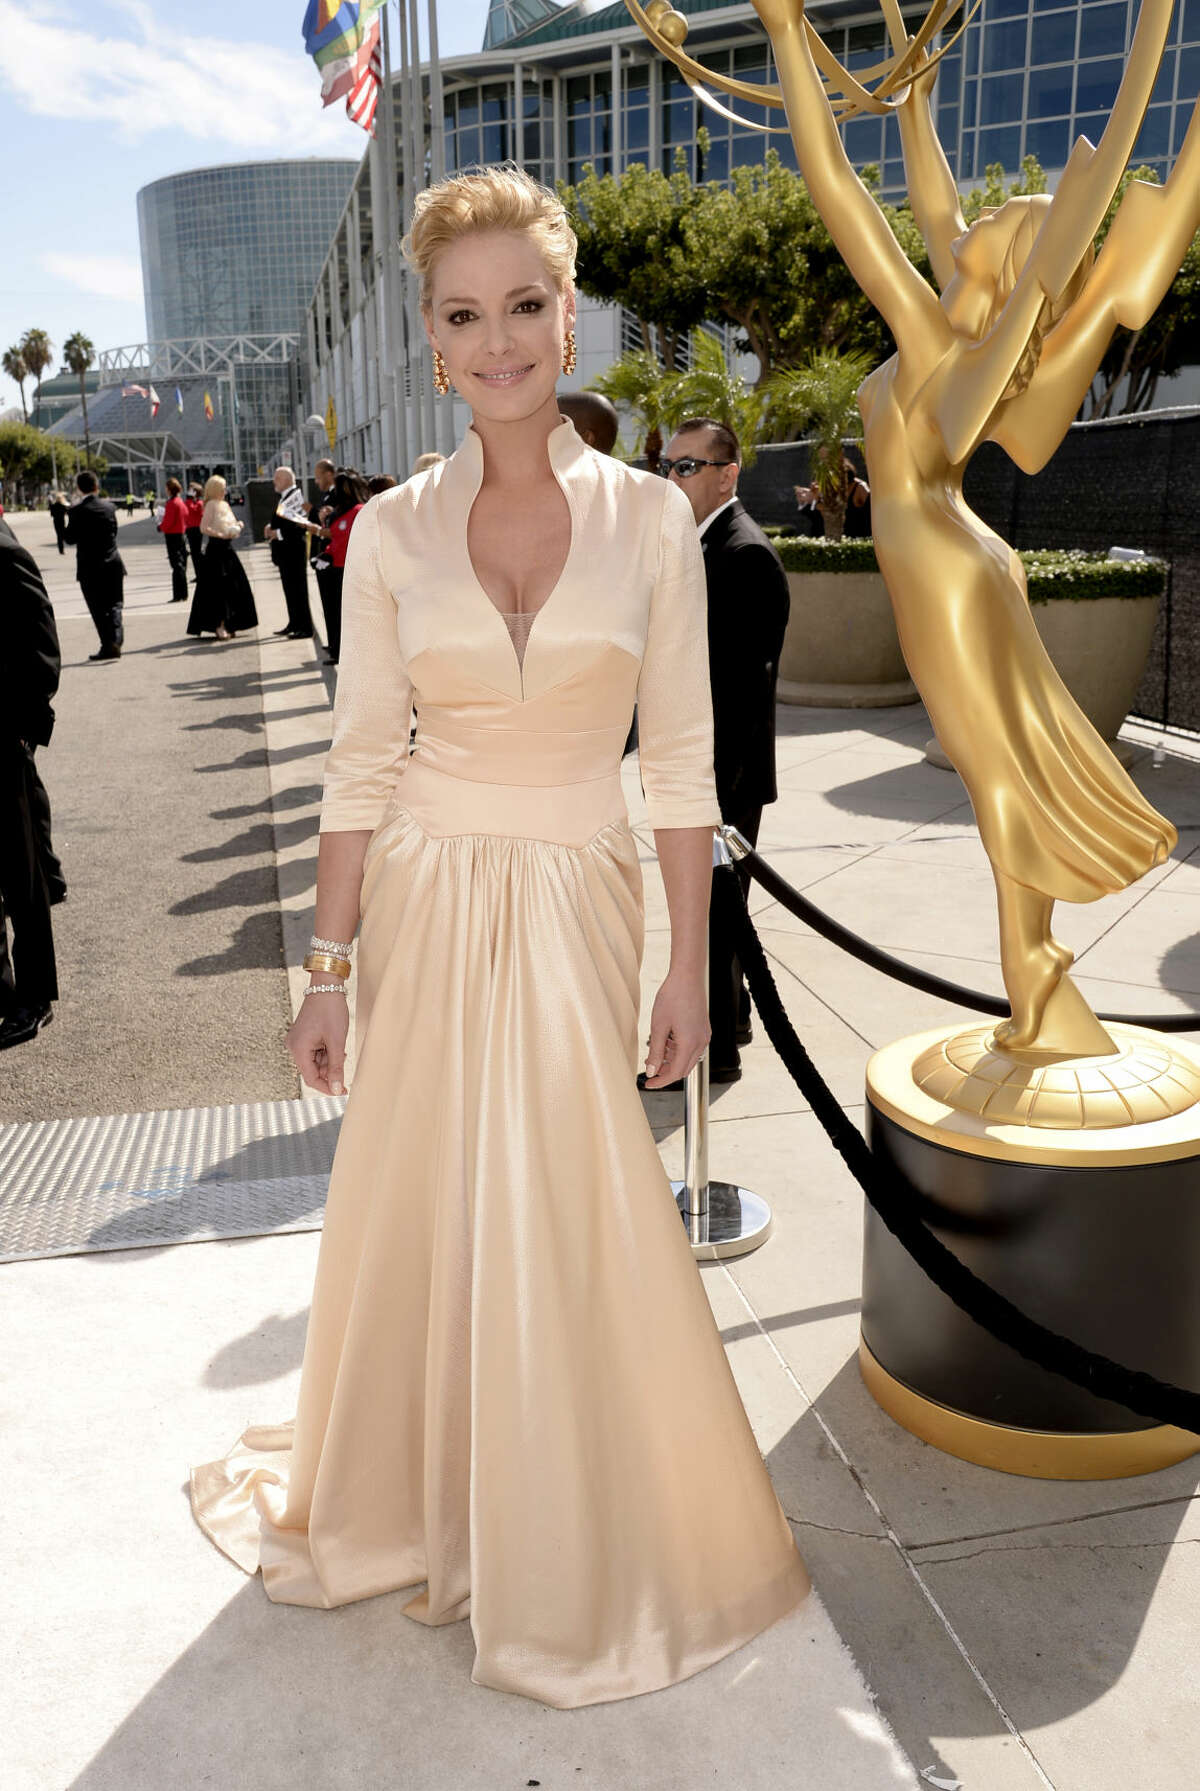 IMAGE DISTRIBUTED FOR THE TELEVISION ACADEMY - Katherine Heigl arrives at the 66th Primetime Emmy Awards at the Nokia Theatre L.A. Live on Monday, Aug. 25, 2014, in Los Angeles. (Photo by Dan Steinberg/Invision for the Television Academy/AP Images)